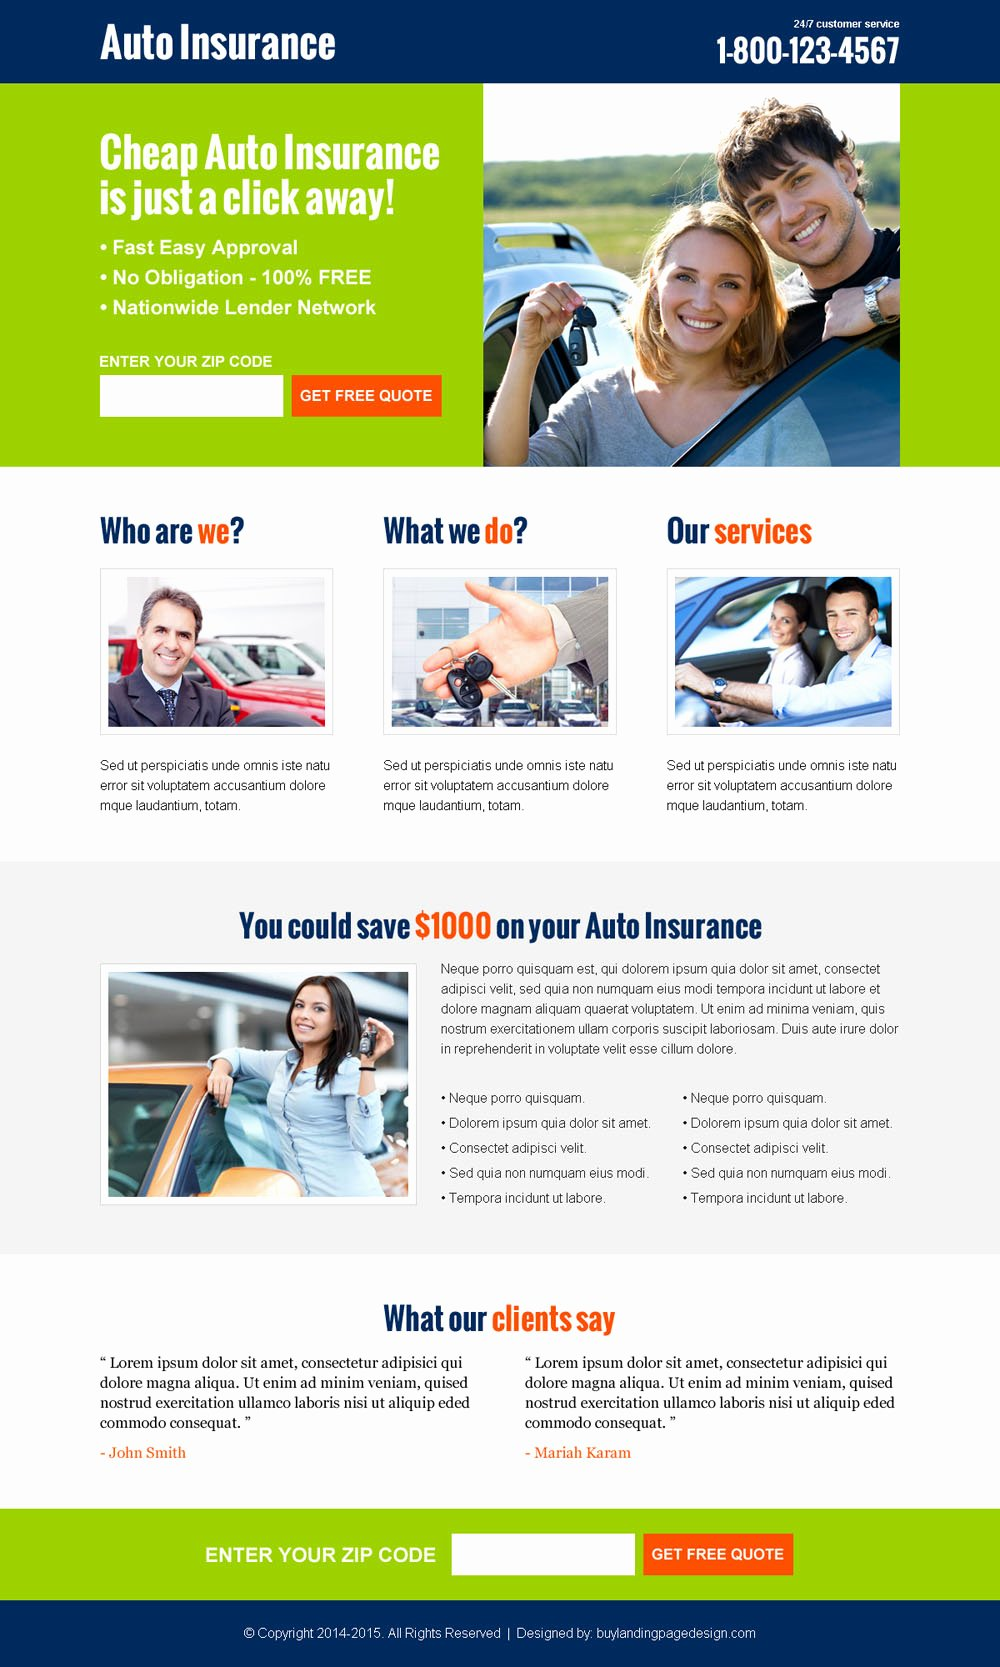 Auto Insurance Template Free New Killer Auto Insurance Converting Responsive Lead Capture